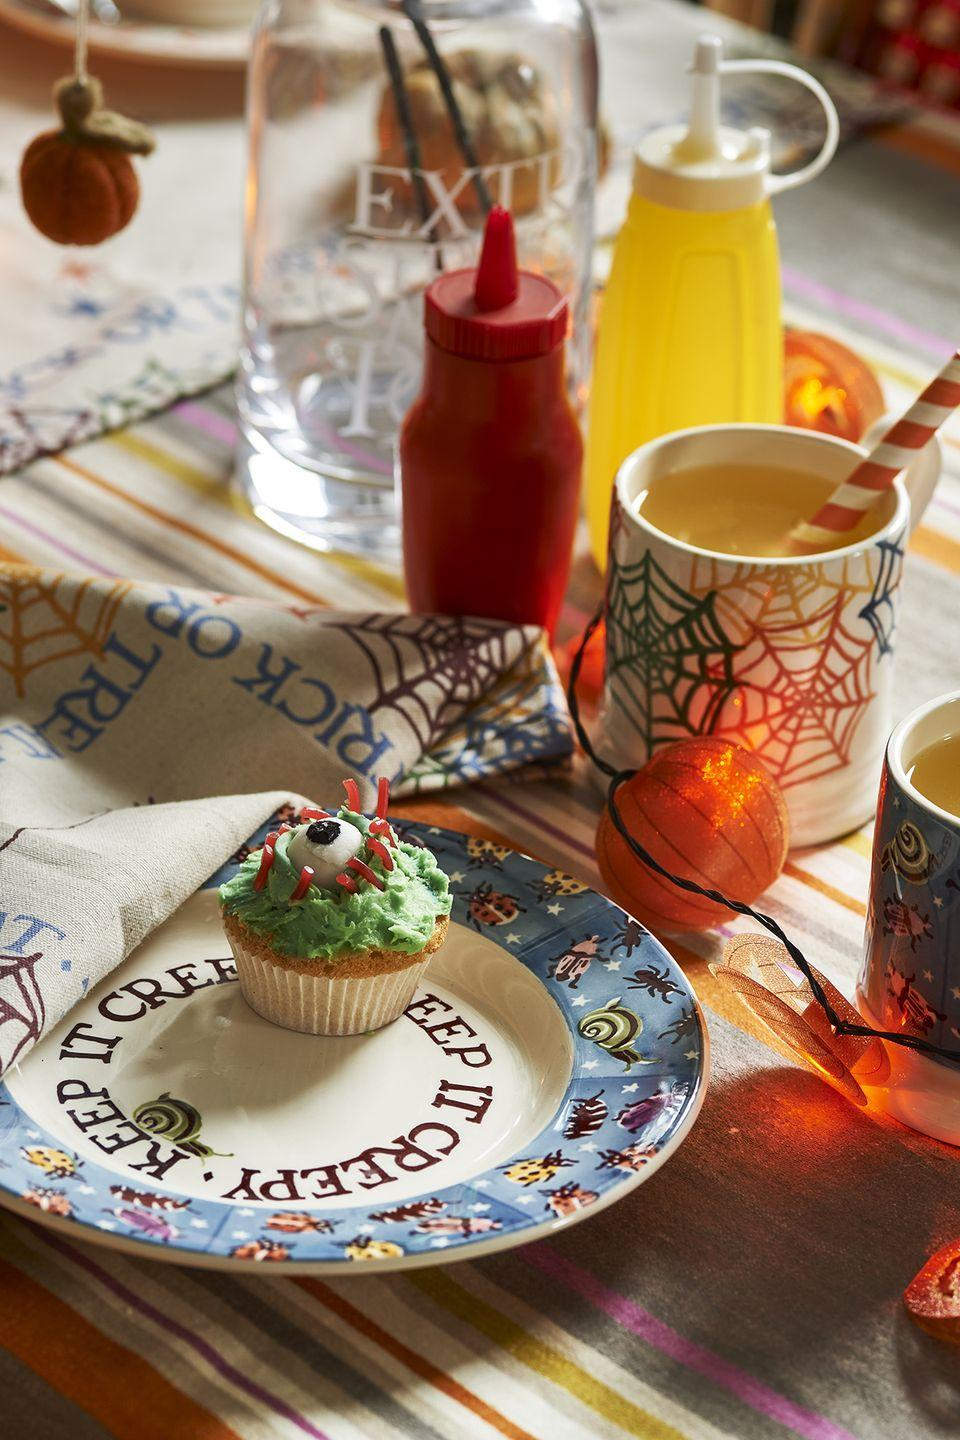 """<p>Turn your home into a haunted house with help from Emma Bridgewater's new <a href=""""https://www.housebeautiful.com/uk/decorate/looks/g33883780/best-halloween-decorations/"""" rel=""""nofollow noopener"""" target=""""_blank"""" data-ylk=""""slk:Halloween"""" class=""""link rapid-noclick-resp"""">Halloween</a>-inspired collection. Creepy crockery includes spiderwebs on bowls, insects on mugs and buckets adorned with pumpkin jack-o-lanterns.</p><p><a class=""""link rapid-noclick-resp"""" href=""""https://go.redirectingat.com?id=127X1599956&url=https%3A%2F%2Fwww.emmabridgewater.co.uk%2Fcollections%2Fhalloween&sref=https%3A%2F%2Fwww.housebeautiful.com%2Fuk%2Flifestyle%2Fshopping%2Fg37527696%2Femma-bridgewater-autumn-range%2F"""" rel=""""nofollow noopener"""" target=""""_blank"""" data-ylk=""""slk:SHOP THE RANGE"""">SHOP THE RANGE</a></p>"""